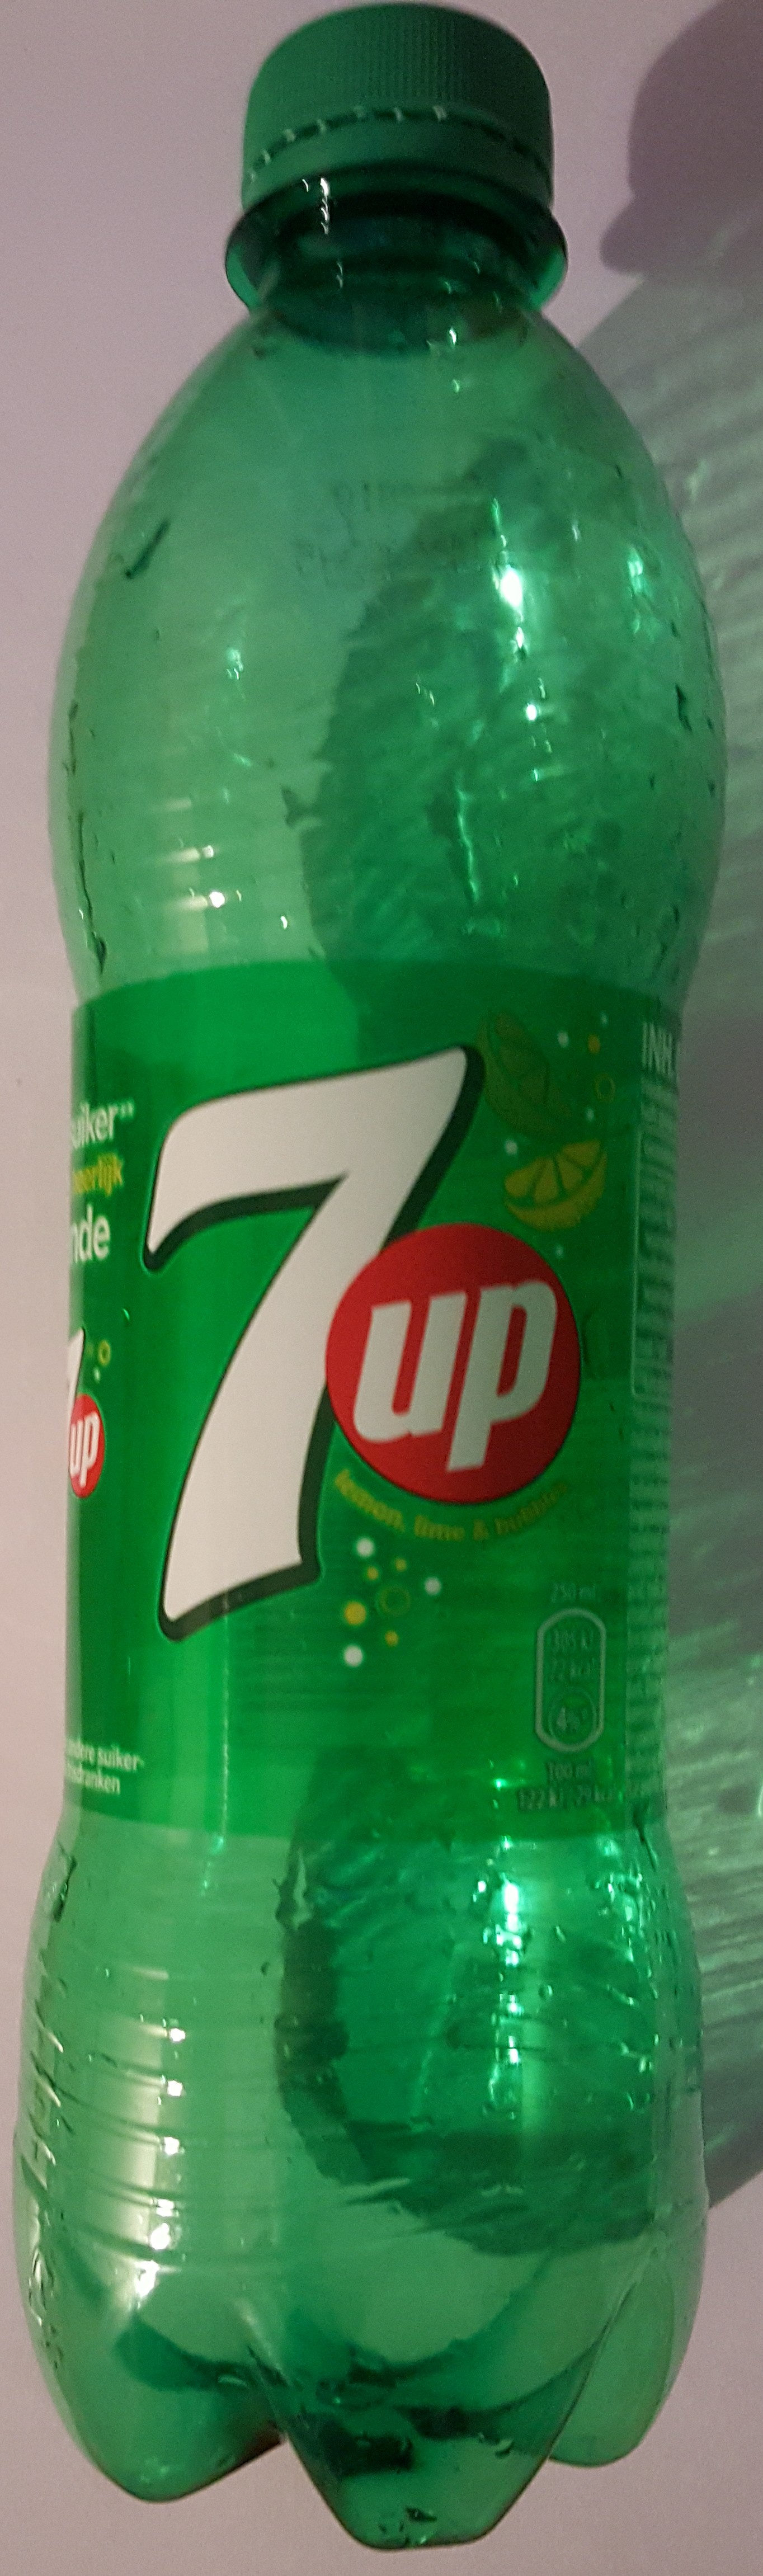 7up - Product